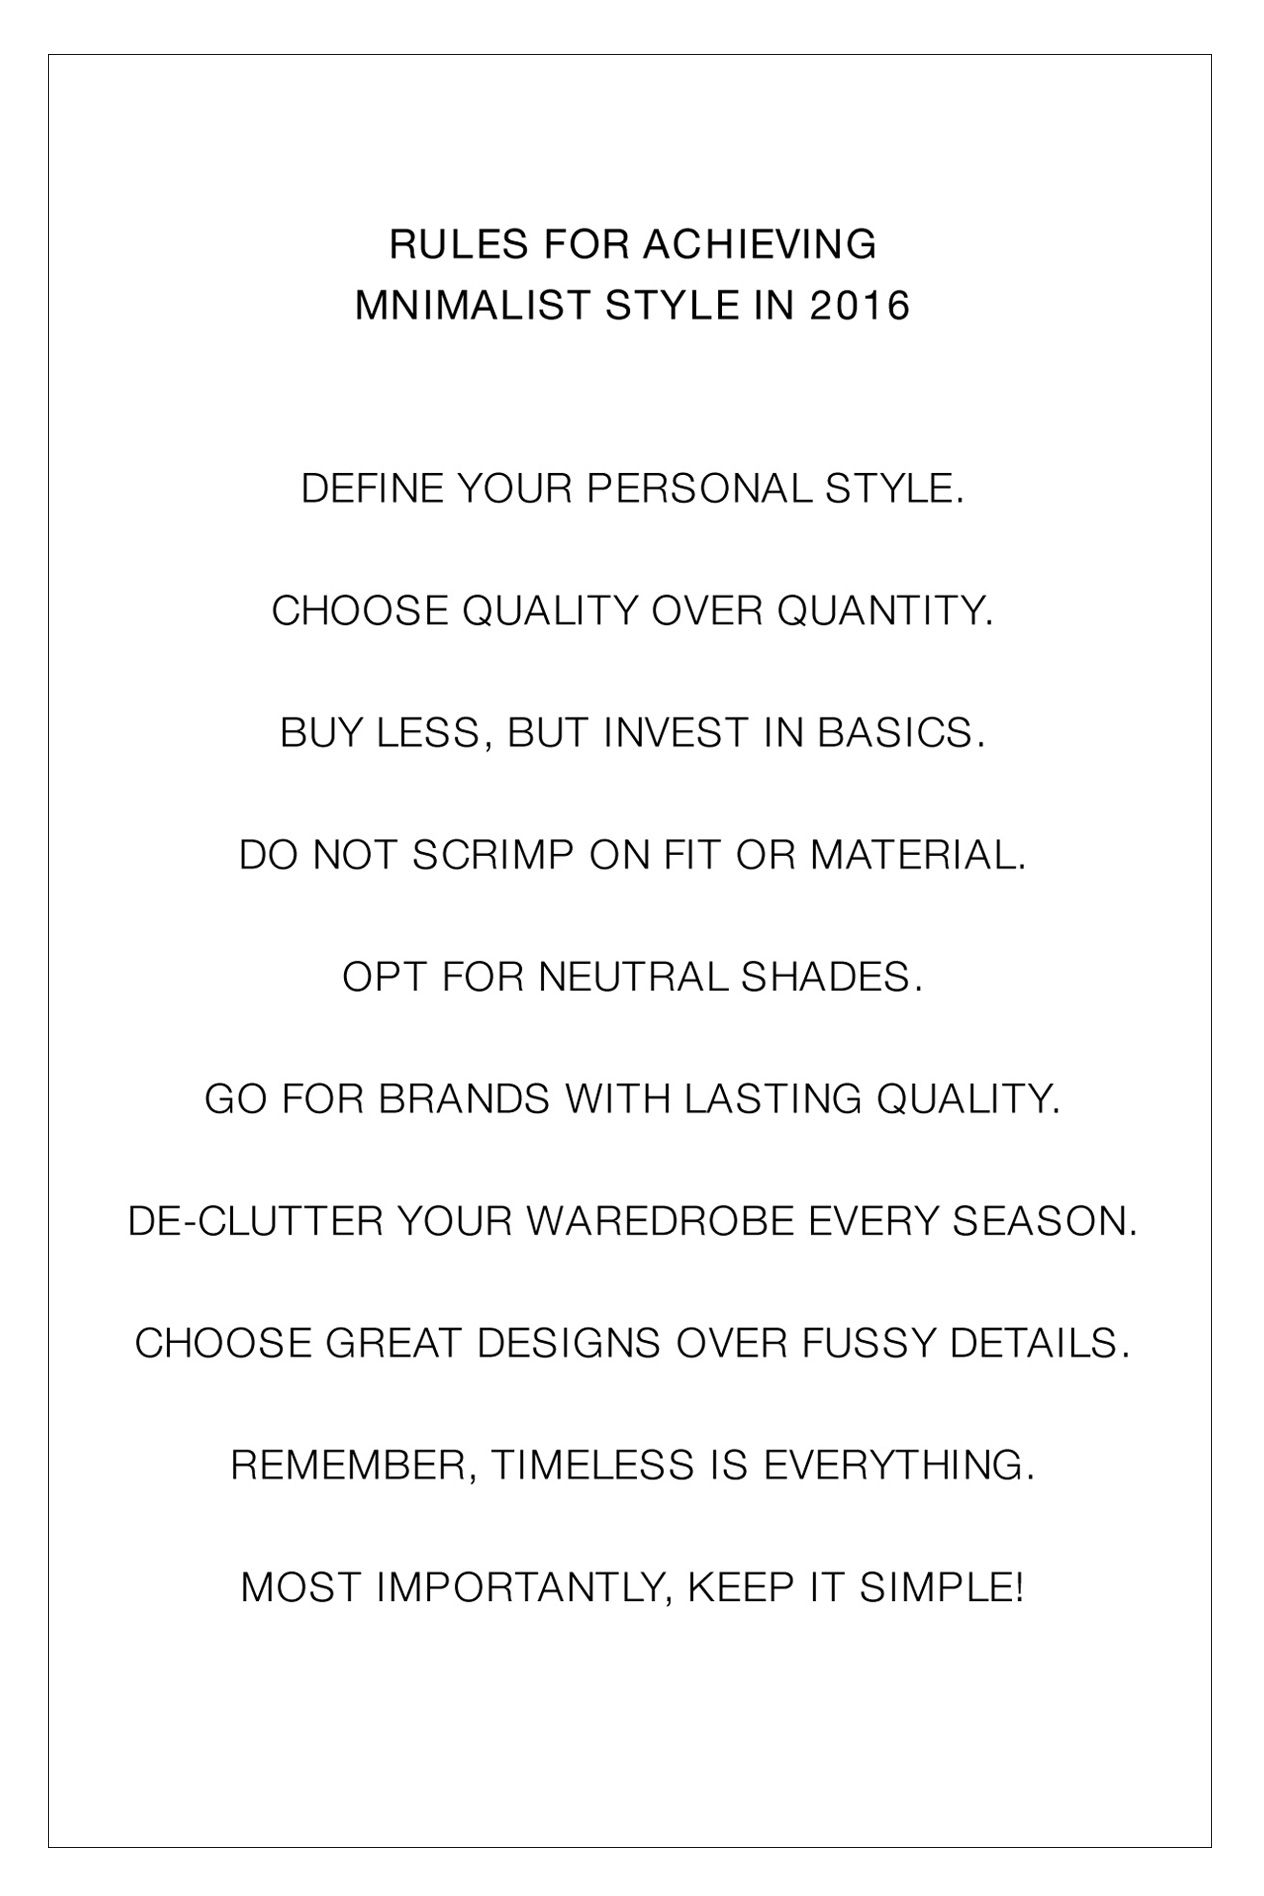 cb7ca5a7c62 10 Rules for Achieving Minimalist Style in the New Year